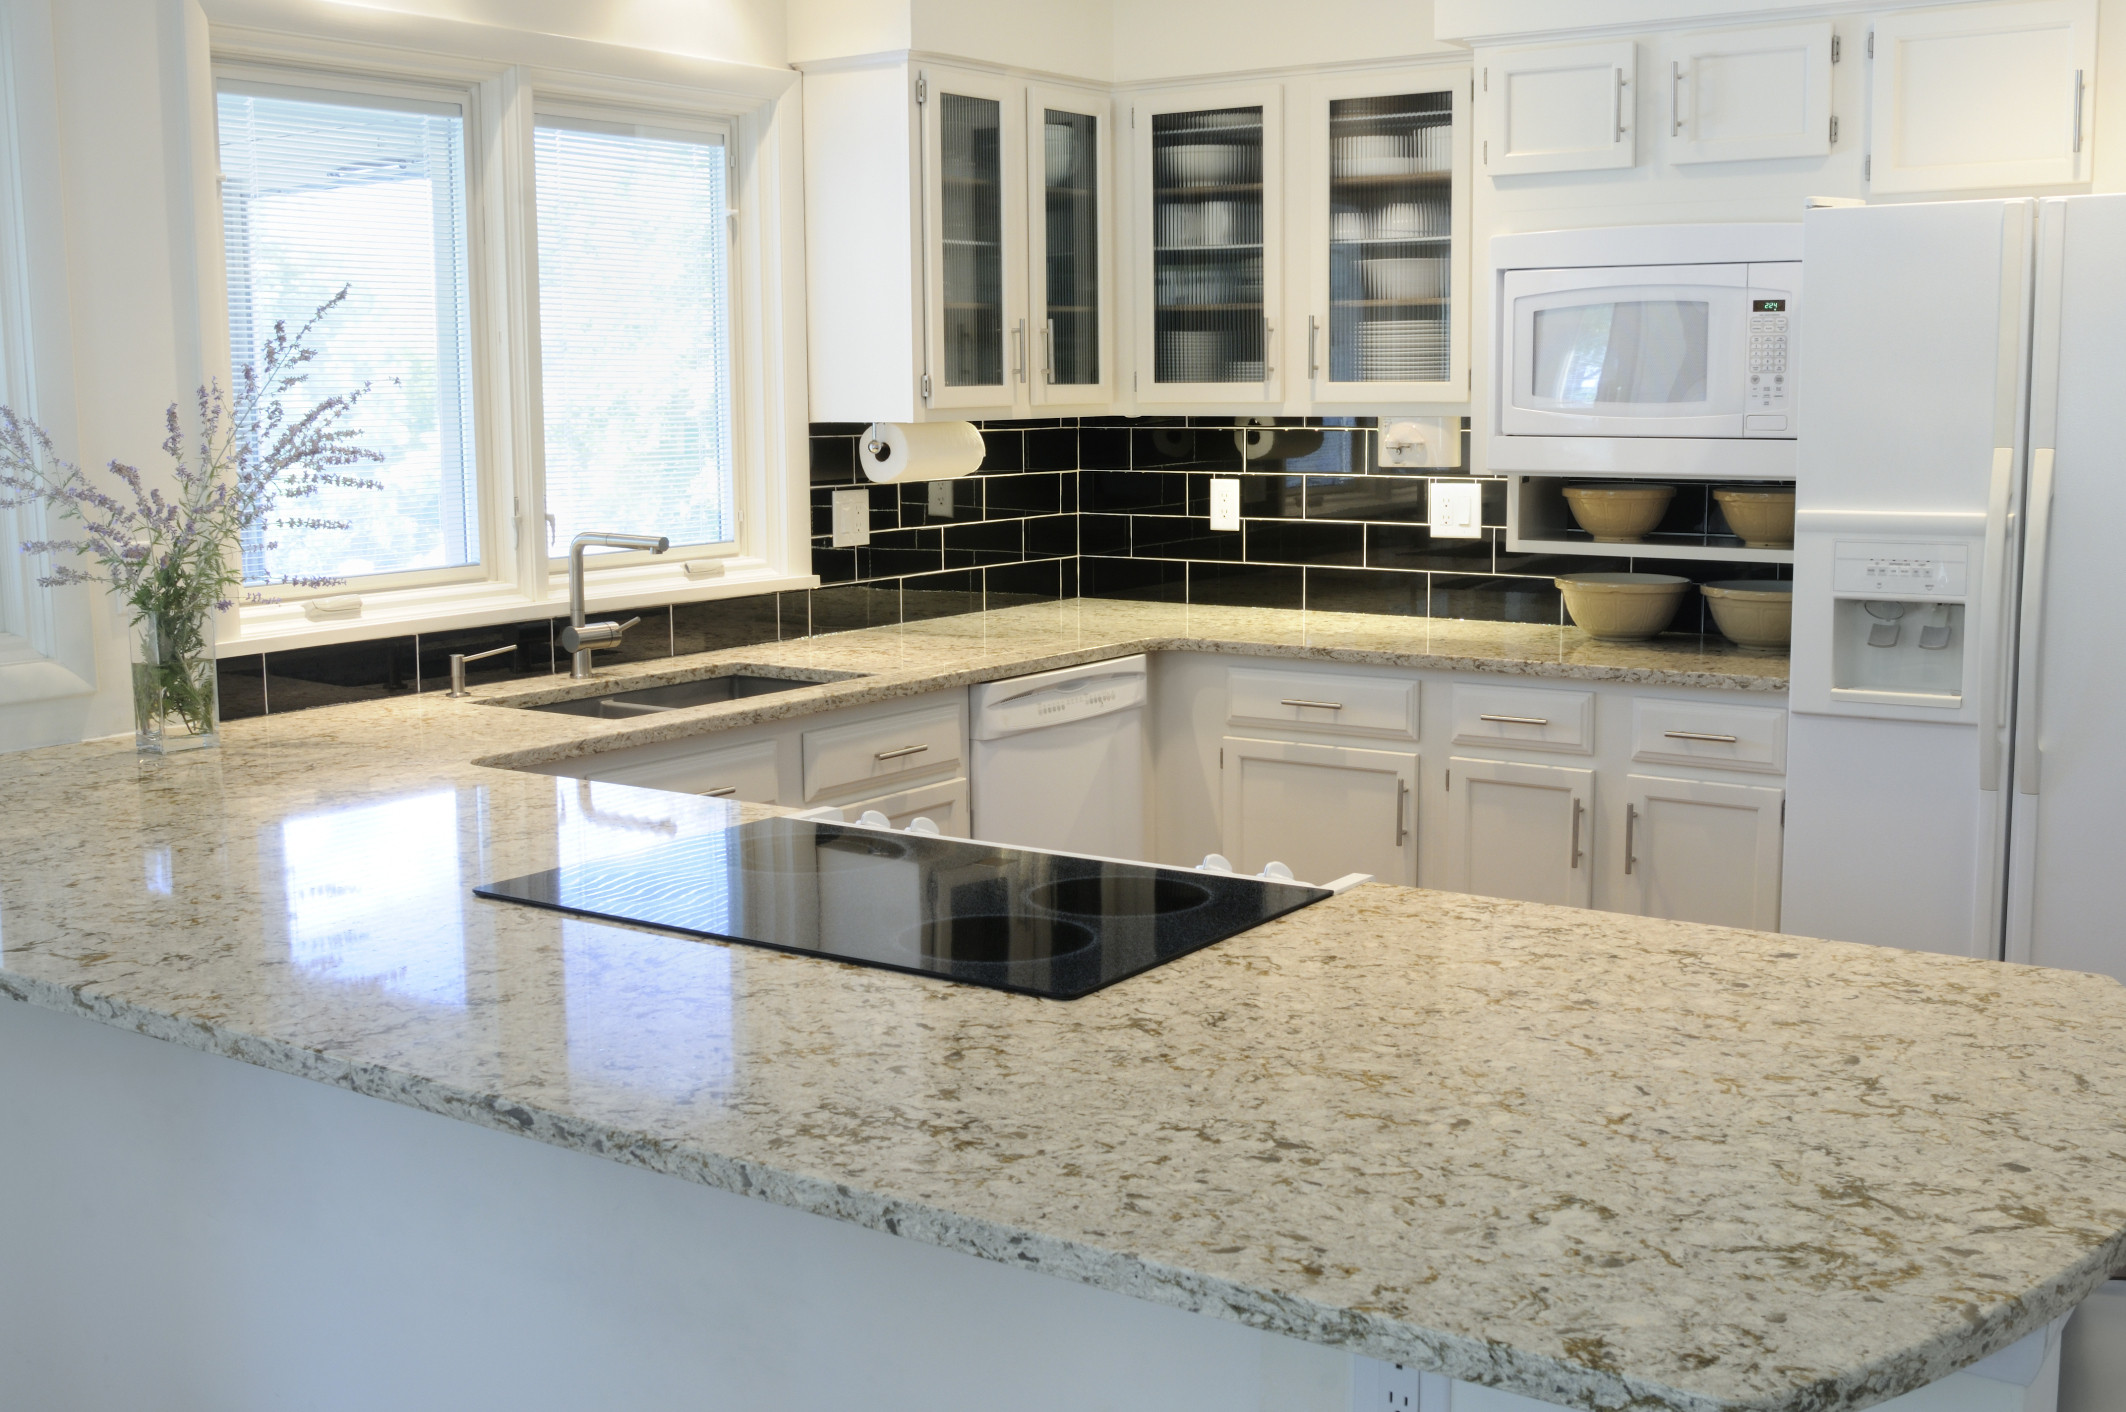 10 Reasons To Let Go Of The Granite Obsession Already Huffpost Life